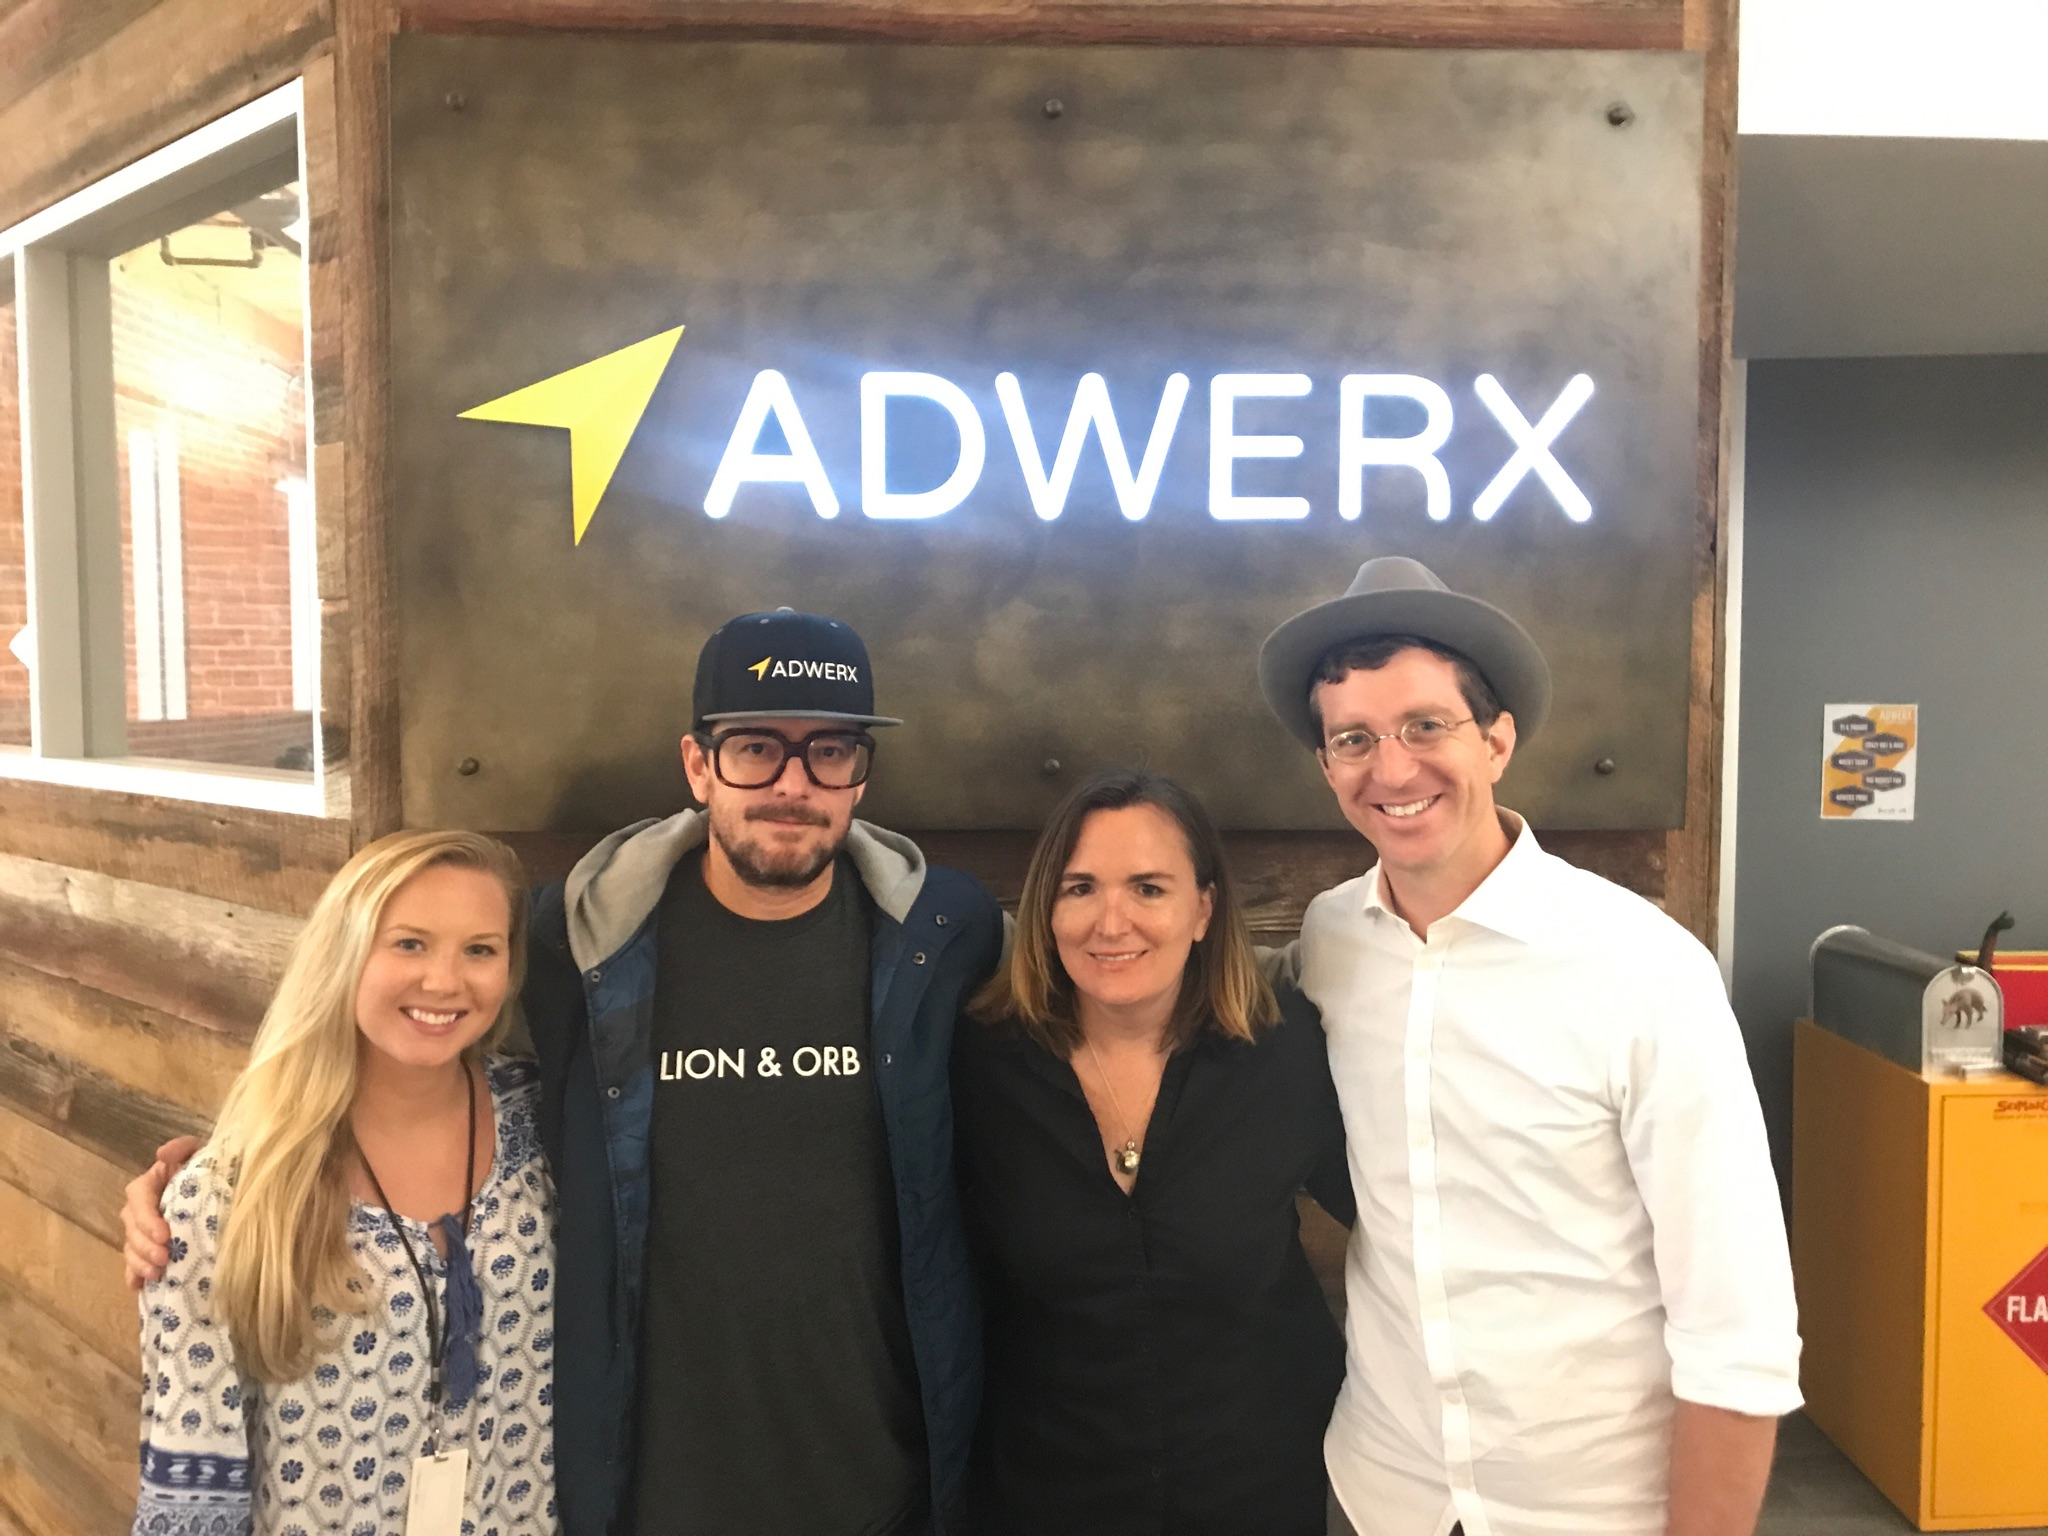 This week we traveled to Durham, North Carolina to collaborate with one of our newest clients, Adwerx.   Adwerx is known in real estate and beyond for selling easy-to-use digital ads. Digital advertising is so engrained into the online experience that it's always surprising when people don't advertise online. It is inexpensive and can be targeted so that you reach only the audience you want.  Digital advertising is both complicated and simple. it can seem deceptive in its simplicity but it's also frustrating. It can take time to see results and despite the fact that it should seem that ads = clicks, the truth is that digital ads are not always a direct path to sales, what they are is a path to visibility.  The most powerful thing about digital ads is their ability to be effortlessly local. When digital advertising first began it was loud, distracting, and mostly not useful. Now digital advertising is personal, tuned to your location, recent searches, and blessed with a near psychic ability to know what you are interested in.  Location is magic in real estate and its magic in the ad world too. Meeting people where they are rather than where you want them to be is the most powerful way to connect.